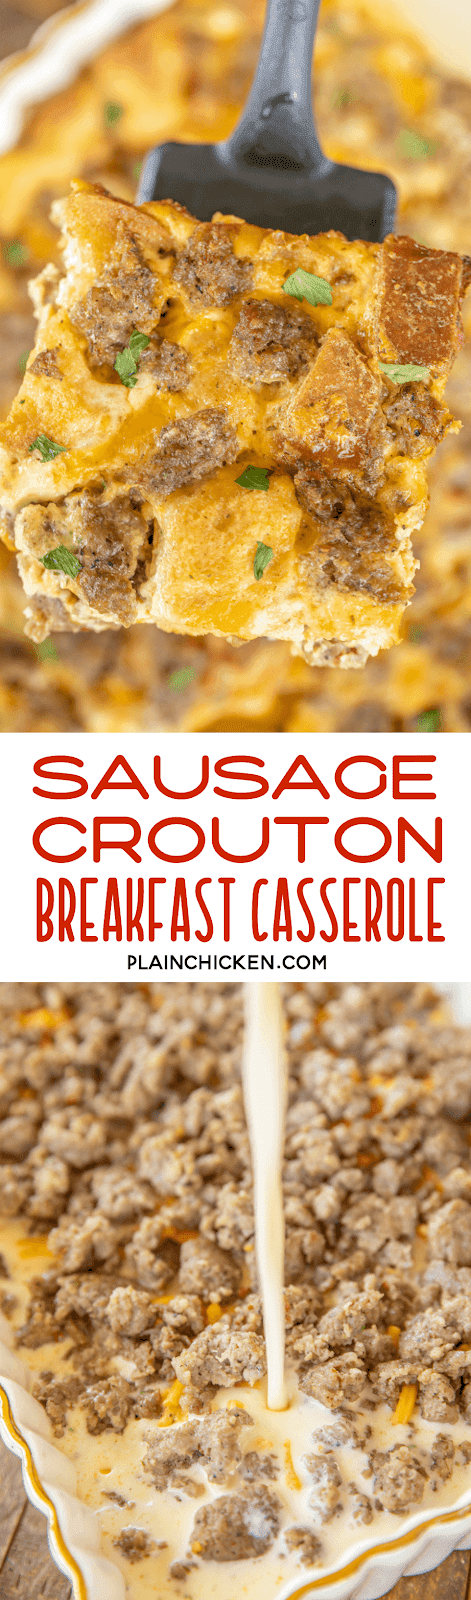 collage of two photos of sausage breakfast casserole